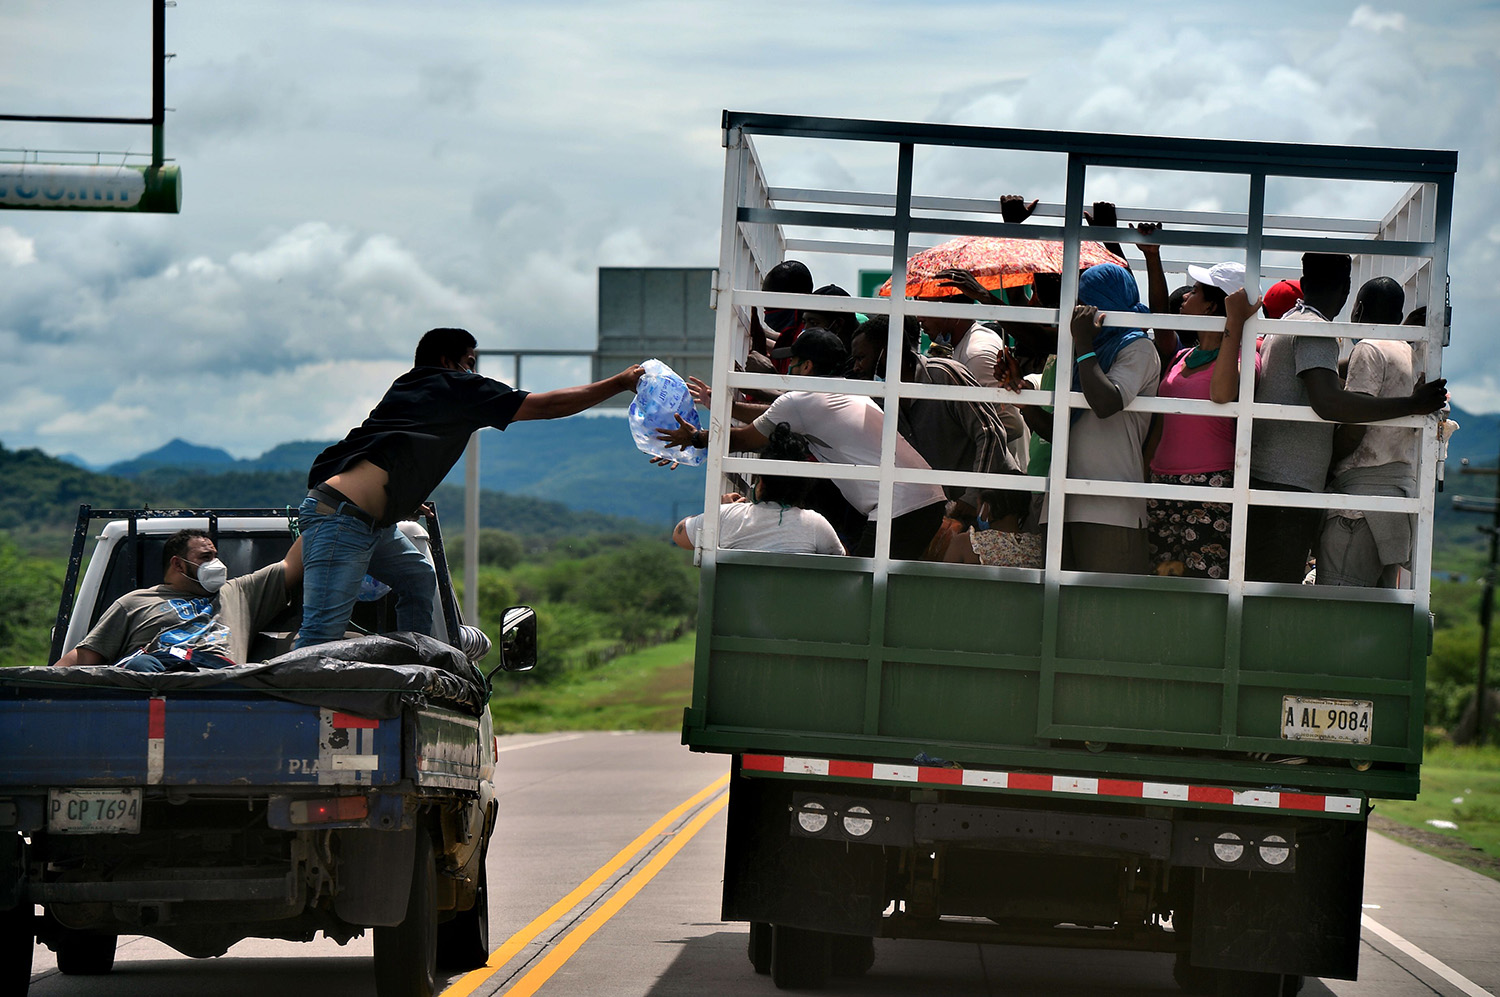 A man gives water to migrants heading to the border with Guatemala as they travel aboard a truck in Cerro de Hula on June 3. Nearly 100 migrants from Congo, Ghana, Ivory Coast, Haiti, and Cuba headed in a caravan from Choluteca, Honduras, to Mexico were stopped by the police for sanitary controls amid the coronavirus pandemic.